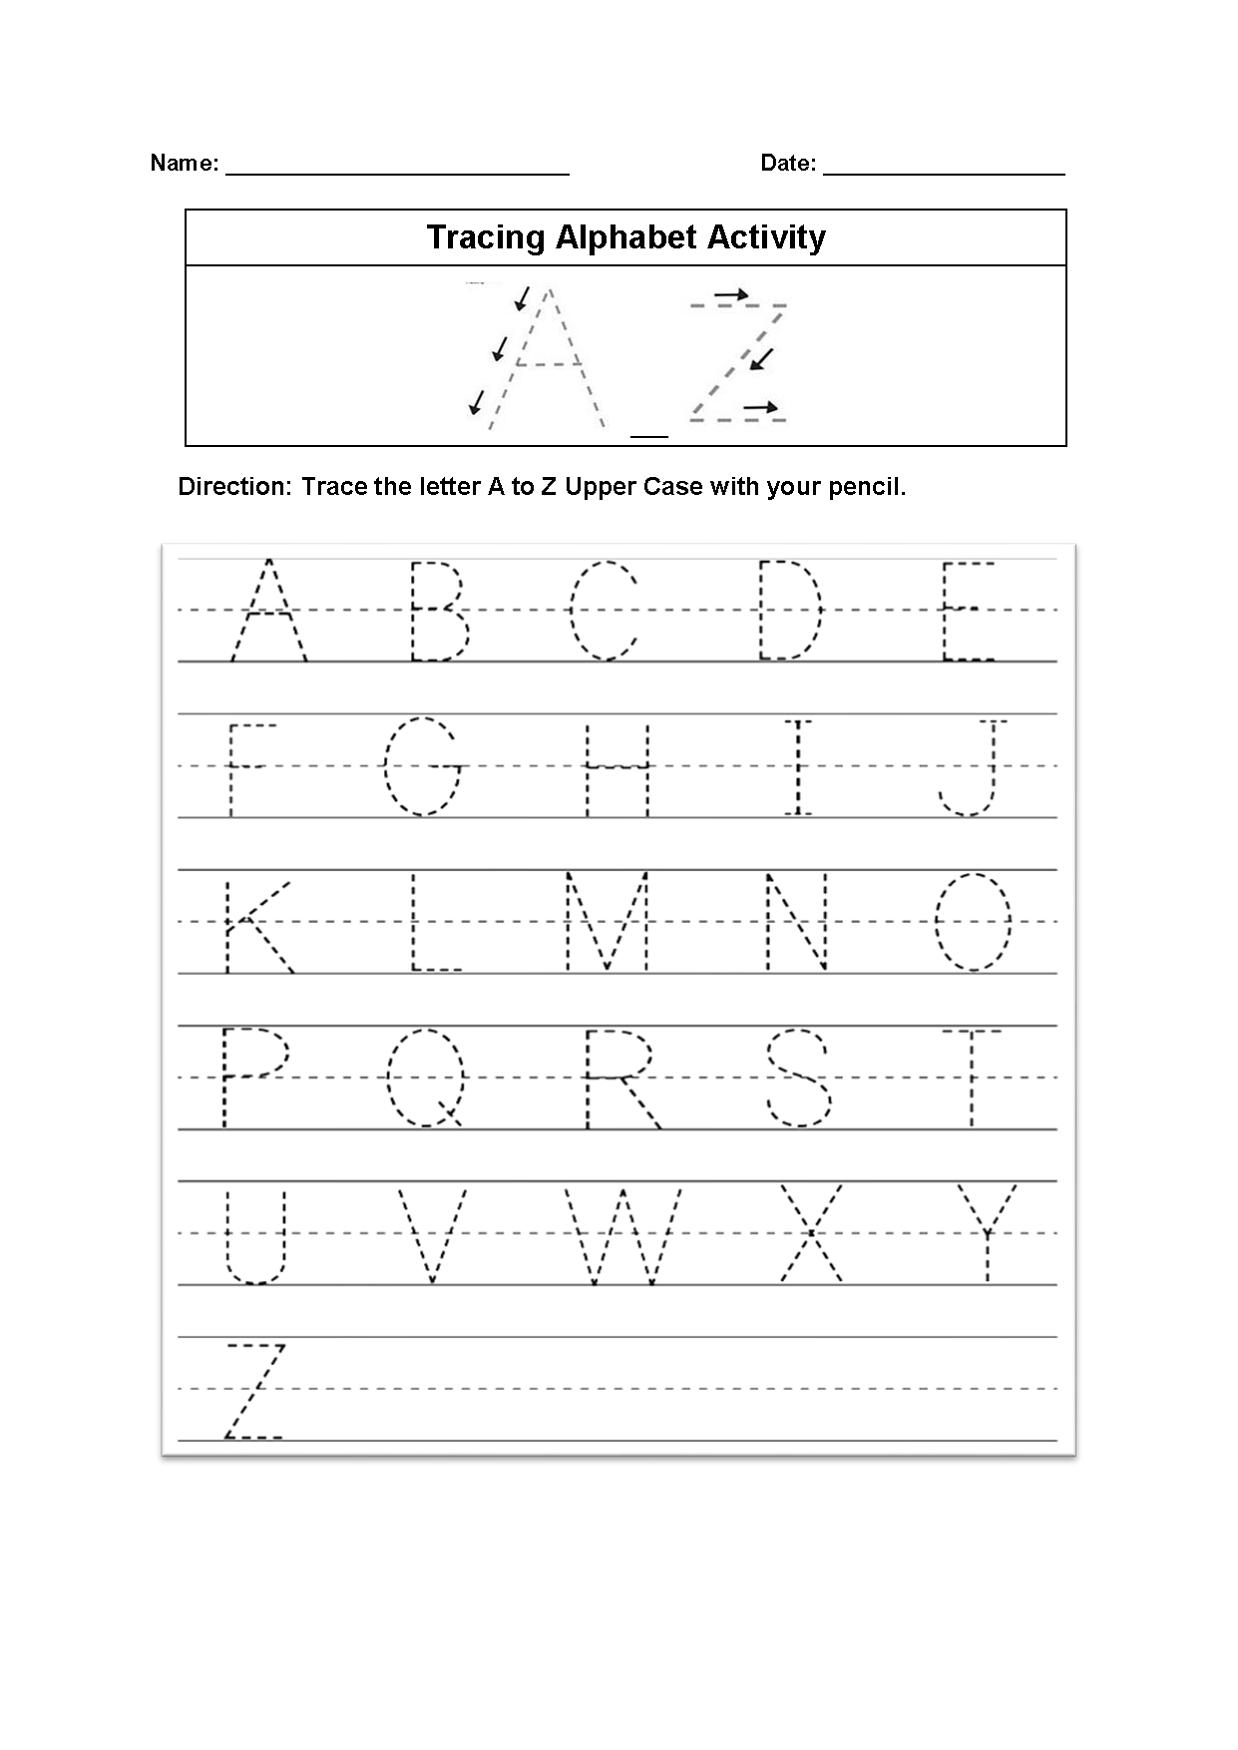 Tracing Alphabet Worksheets – Kids Learning Activity intended for Letter Worksheets A-Z